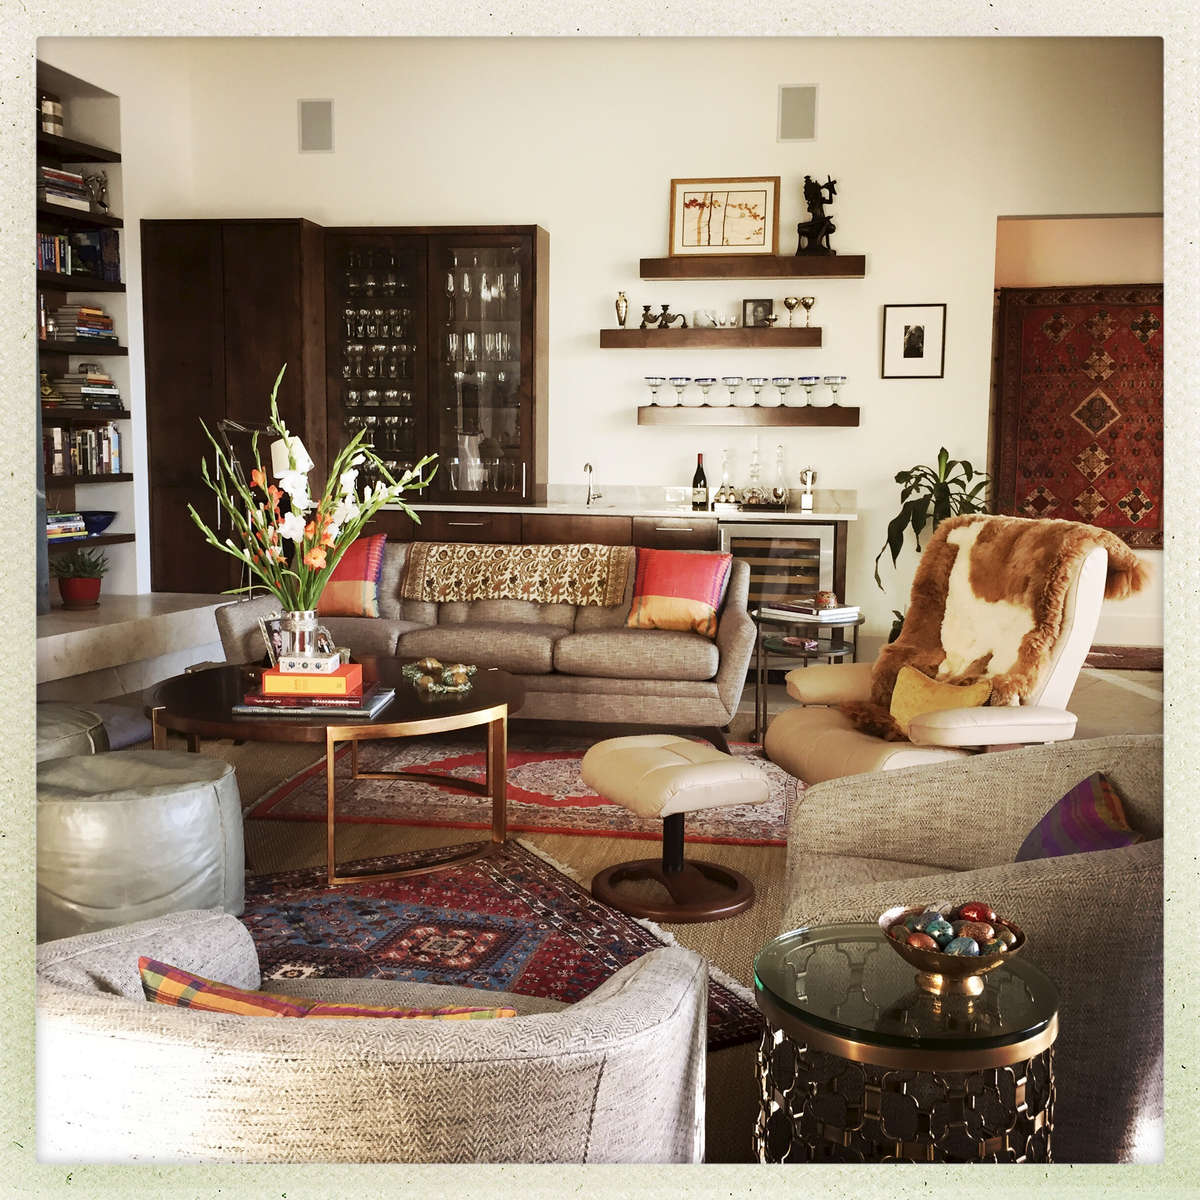 Collections of textiles and rugs are colourful highllghts to the this gathering space.